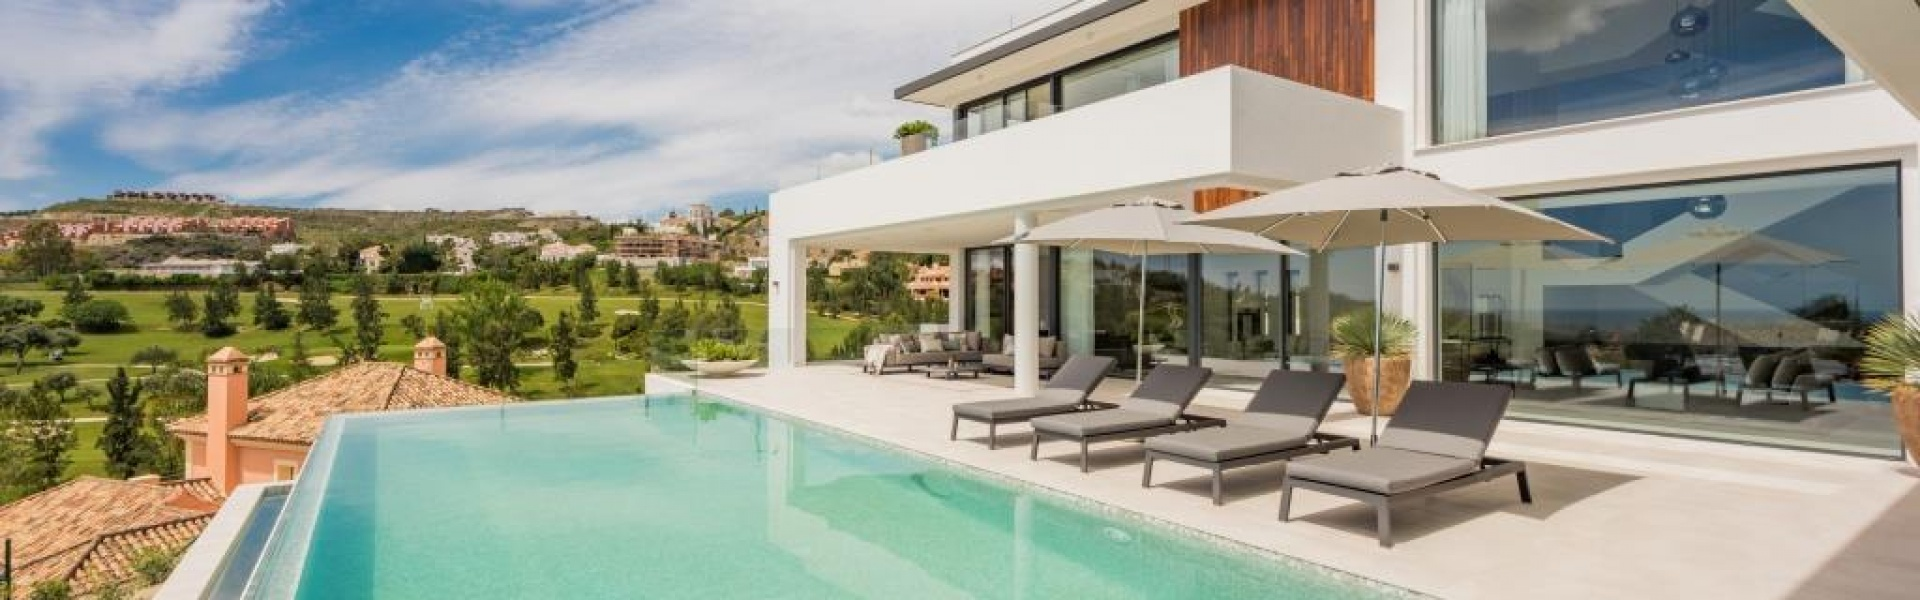 Modern Villa for sale in La Alqueria Benahavis Marbella